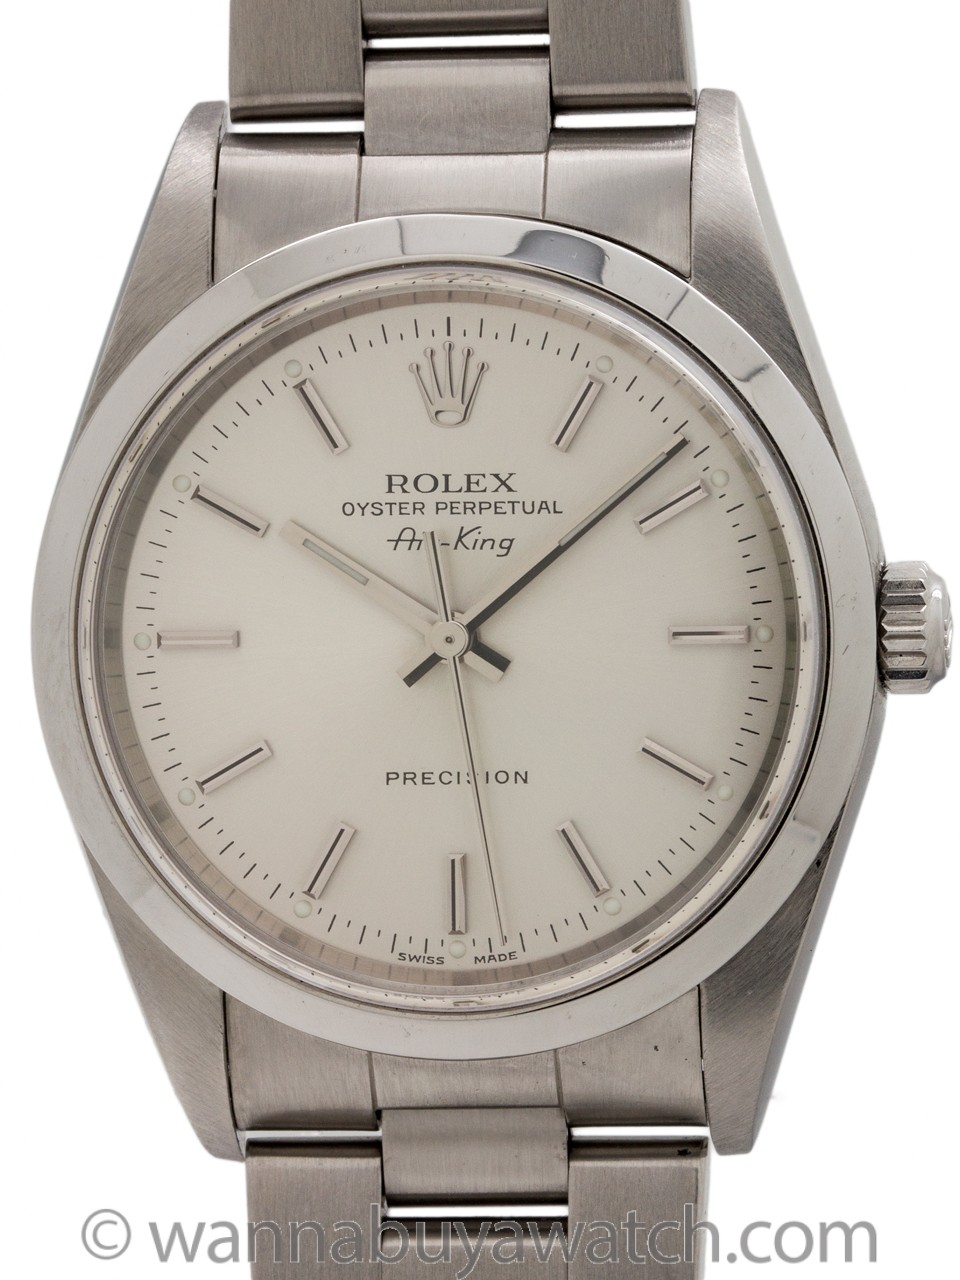 Rolex Oyster Perpetual Airking ref 14000 Silver Dial circa 2002